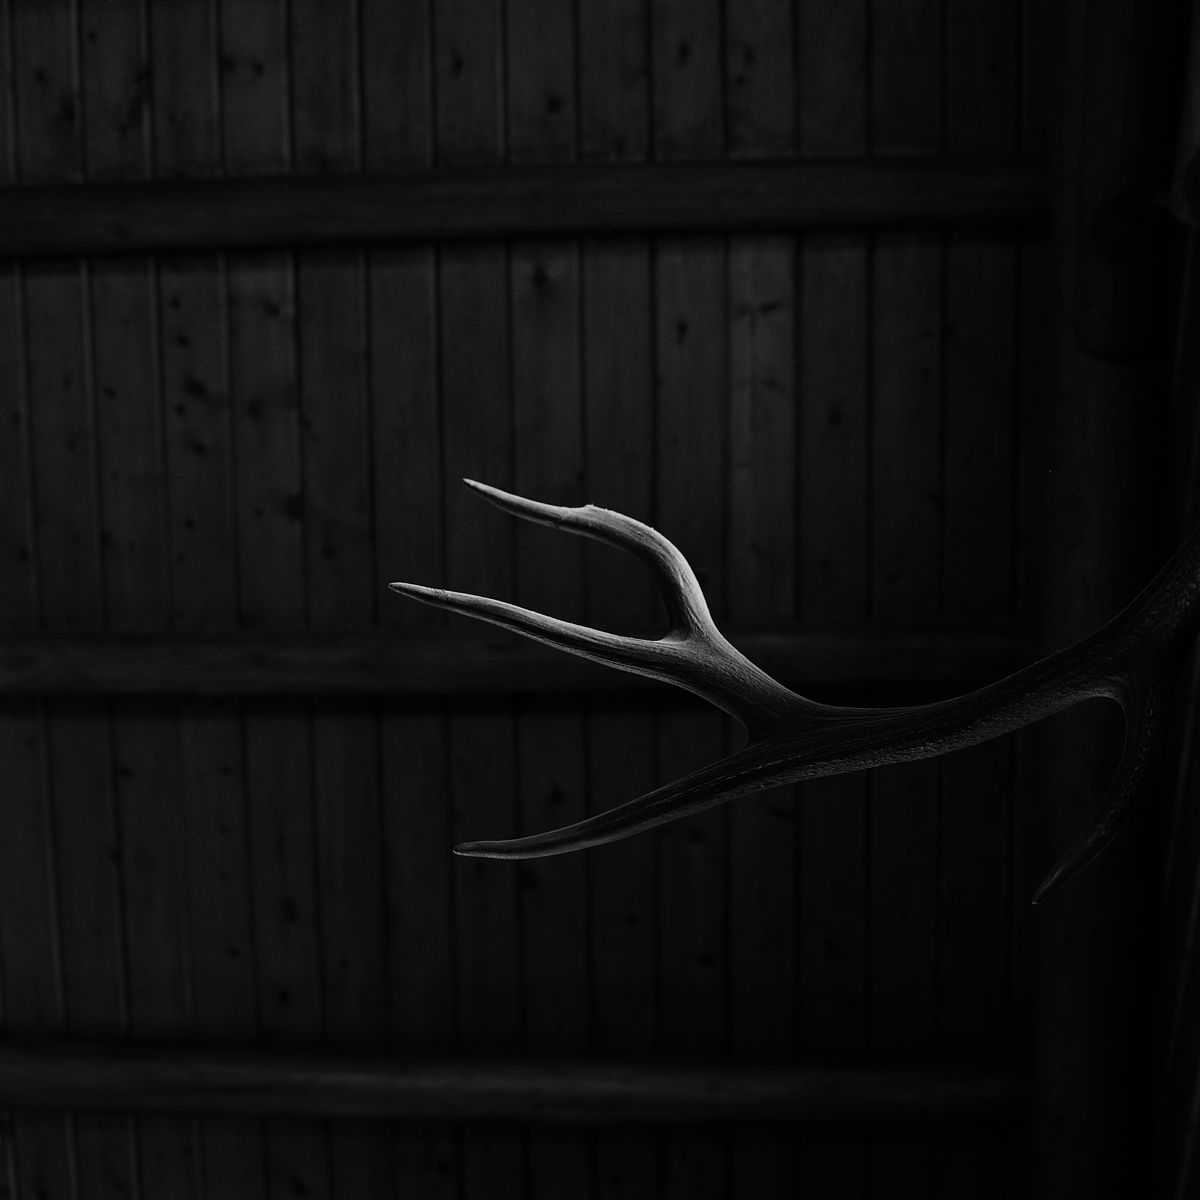 6. Antler, Sagamore Great Camp, Raquette, NY. 2000. Toned Gelatin Silver Print.